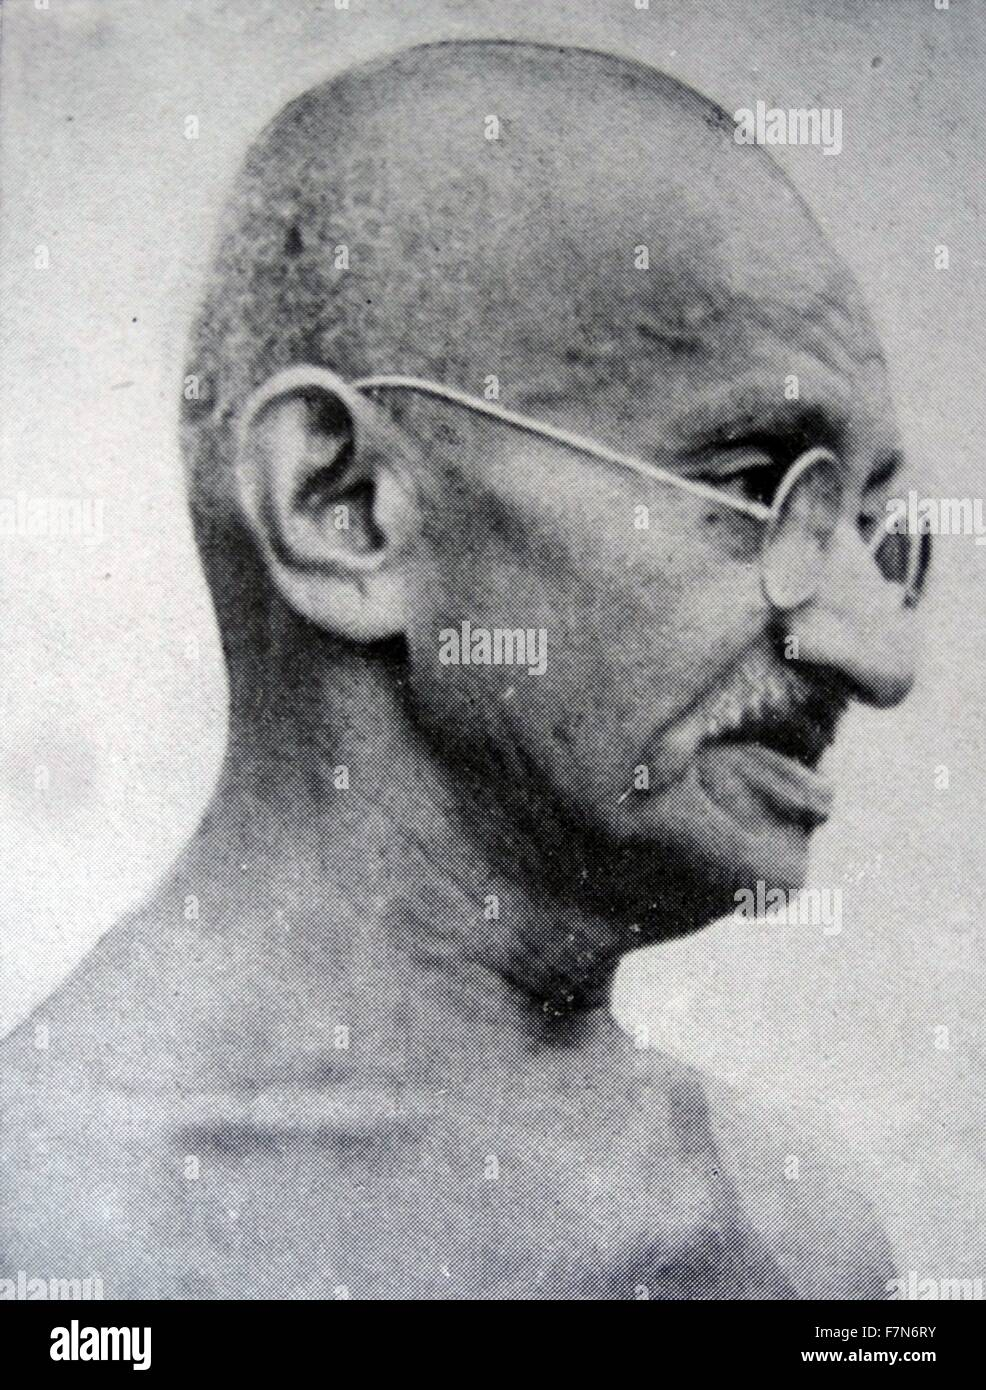 Gandhi, the Indian mystic, politician and leader of the Indian National Congress. - Stock Image